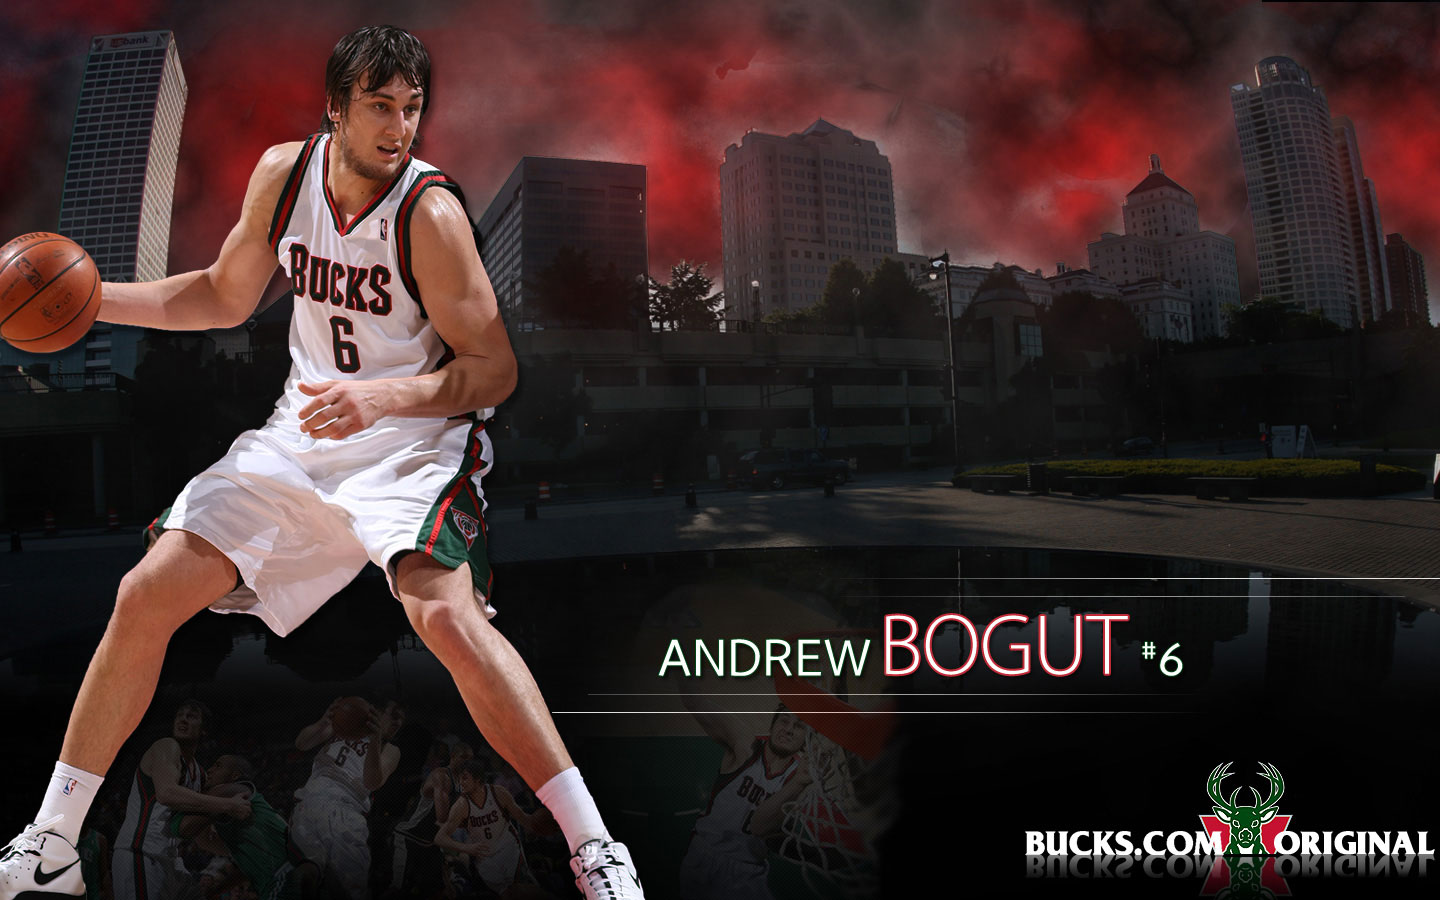 Download-1920x1080-Andrew-bogut-Basketball-Golden-wallpaper-wp3605096